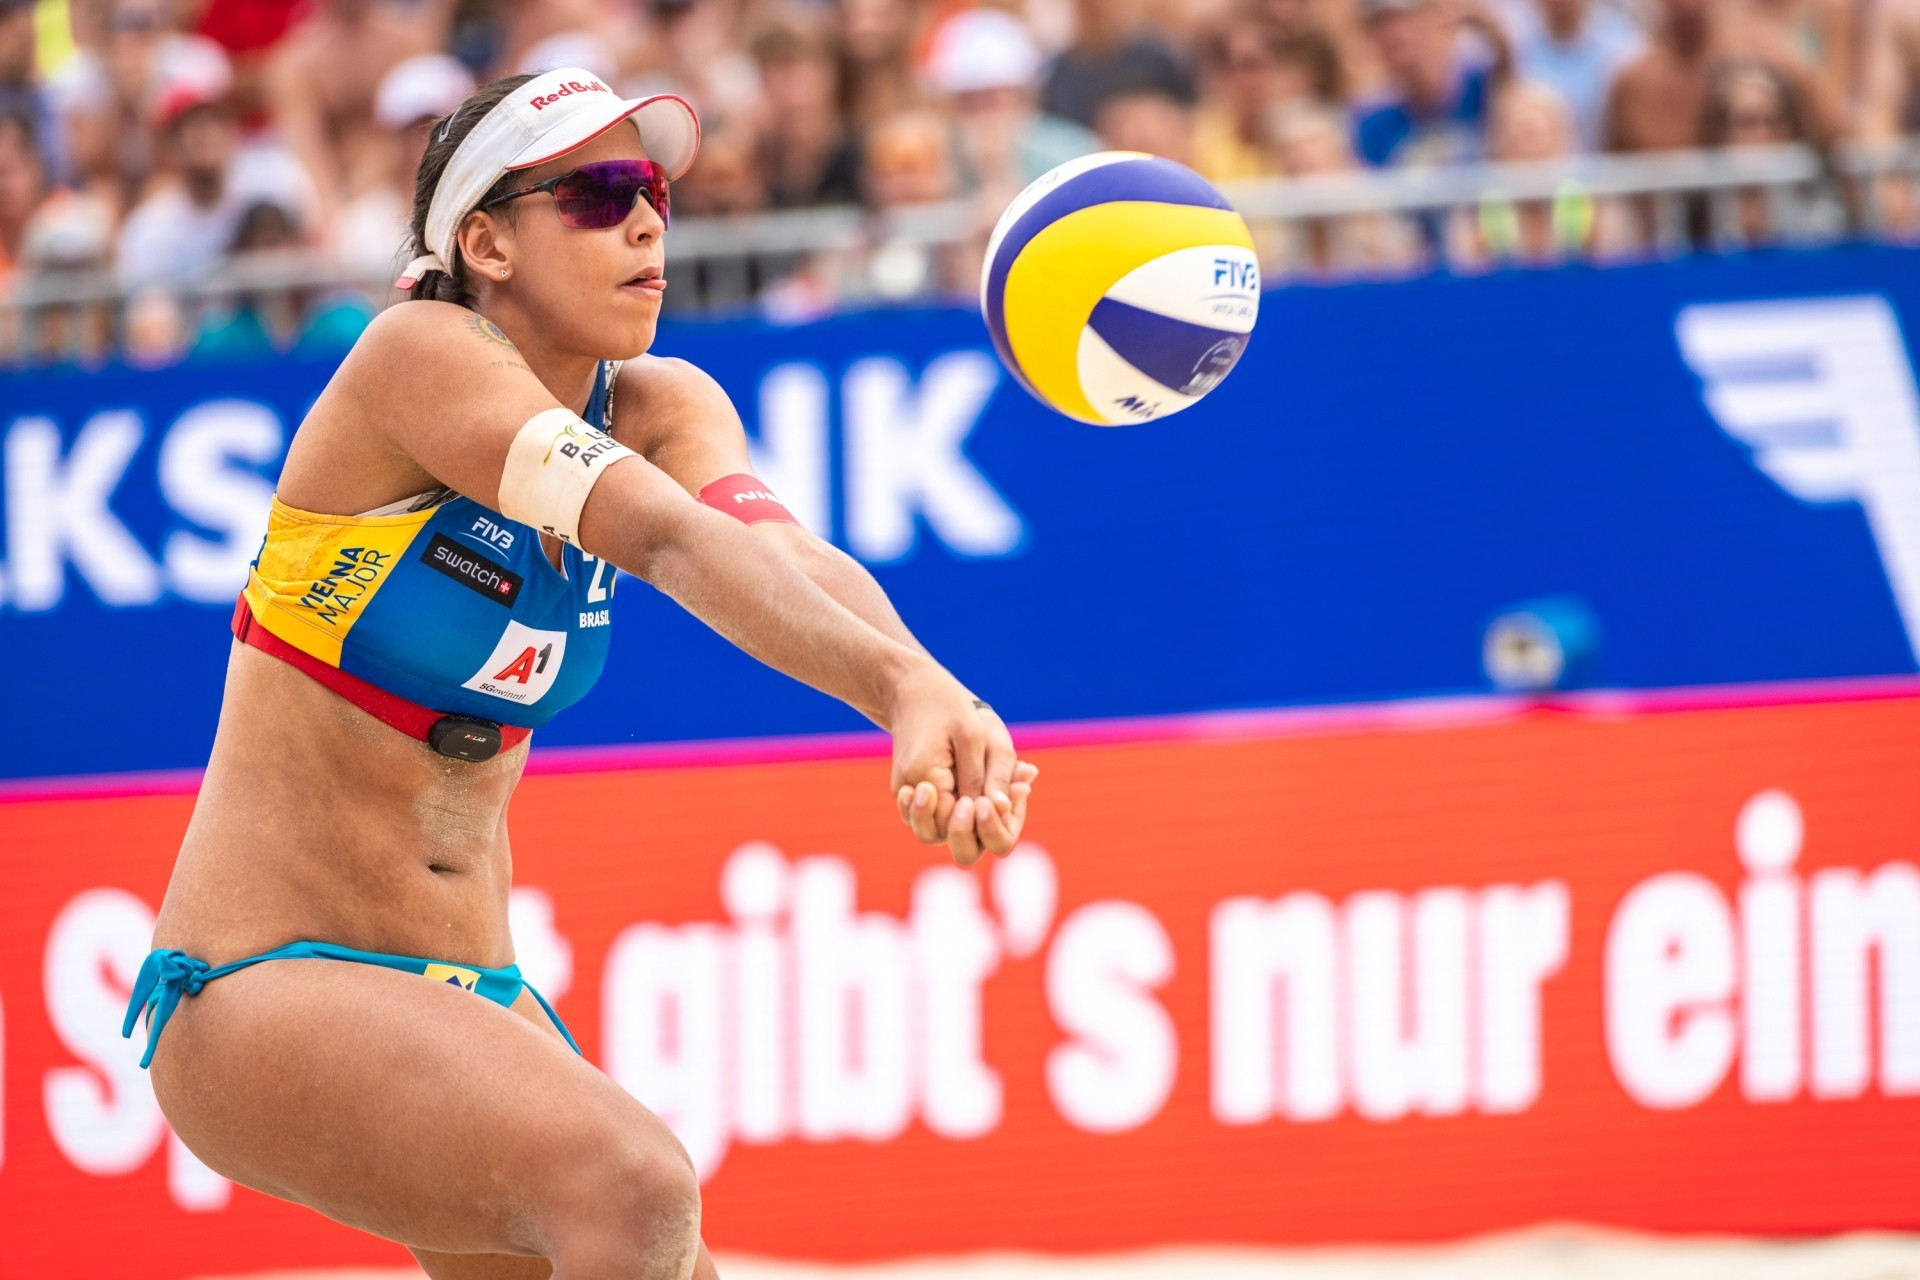 Brazilian star Duda will play in front of her family and friends this weekend